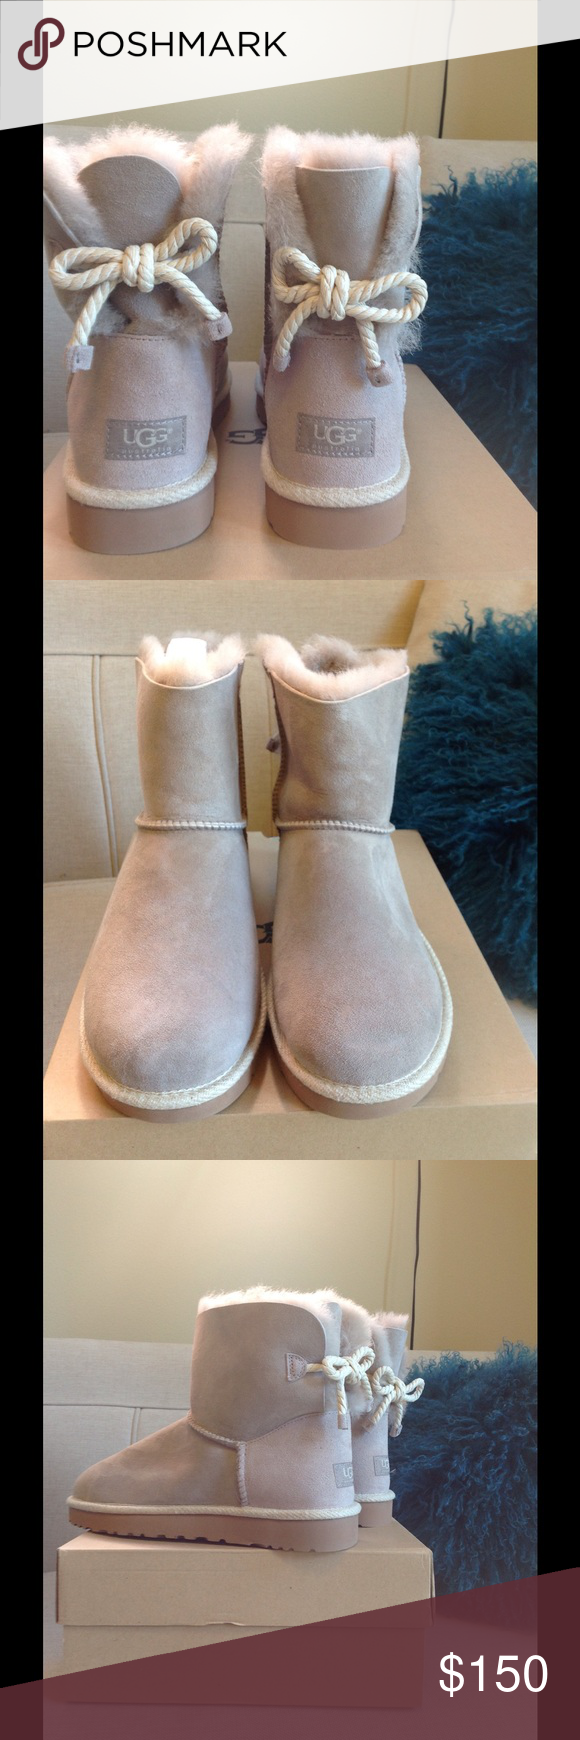 ddfb649c09d Ugg Selene Boot Color is Oyster, new in box. Adorable style. No ...